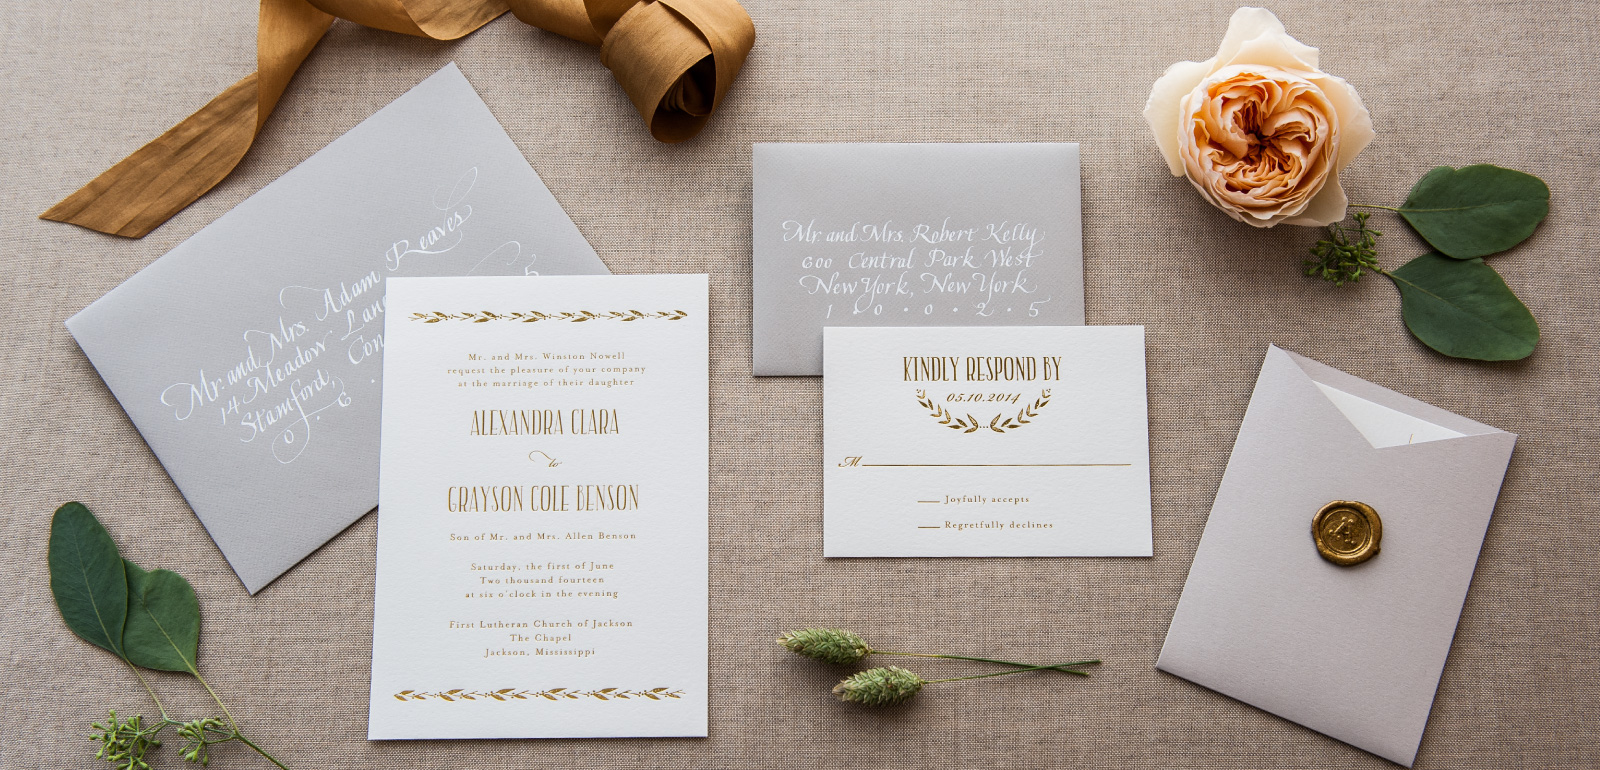 Customization Options   Liners, Foils, Inks, Ribbon, and Monograms.